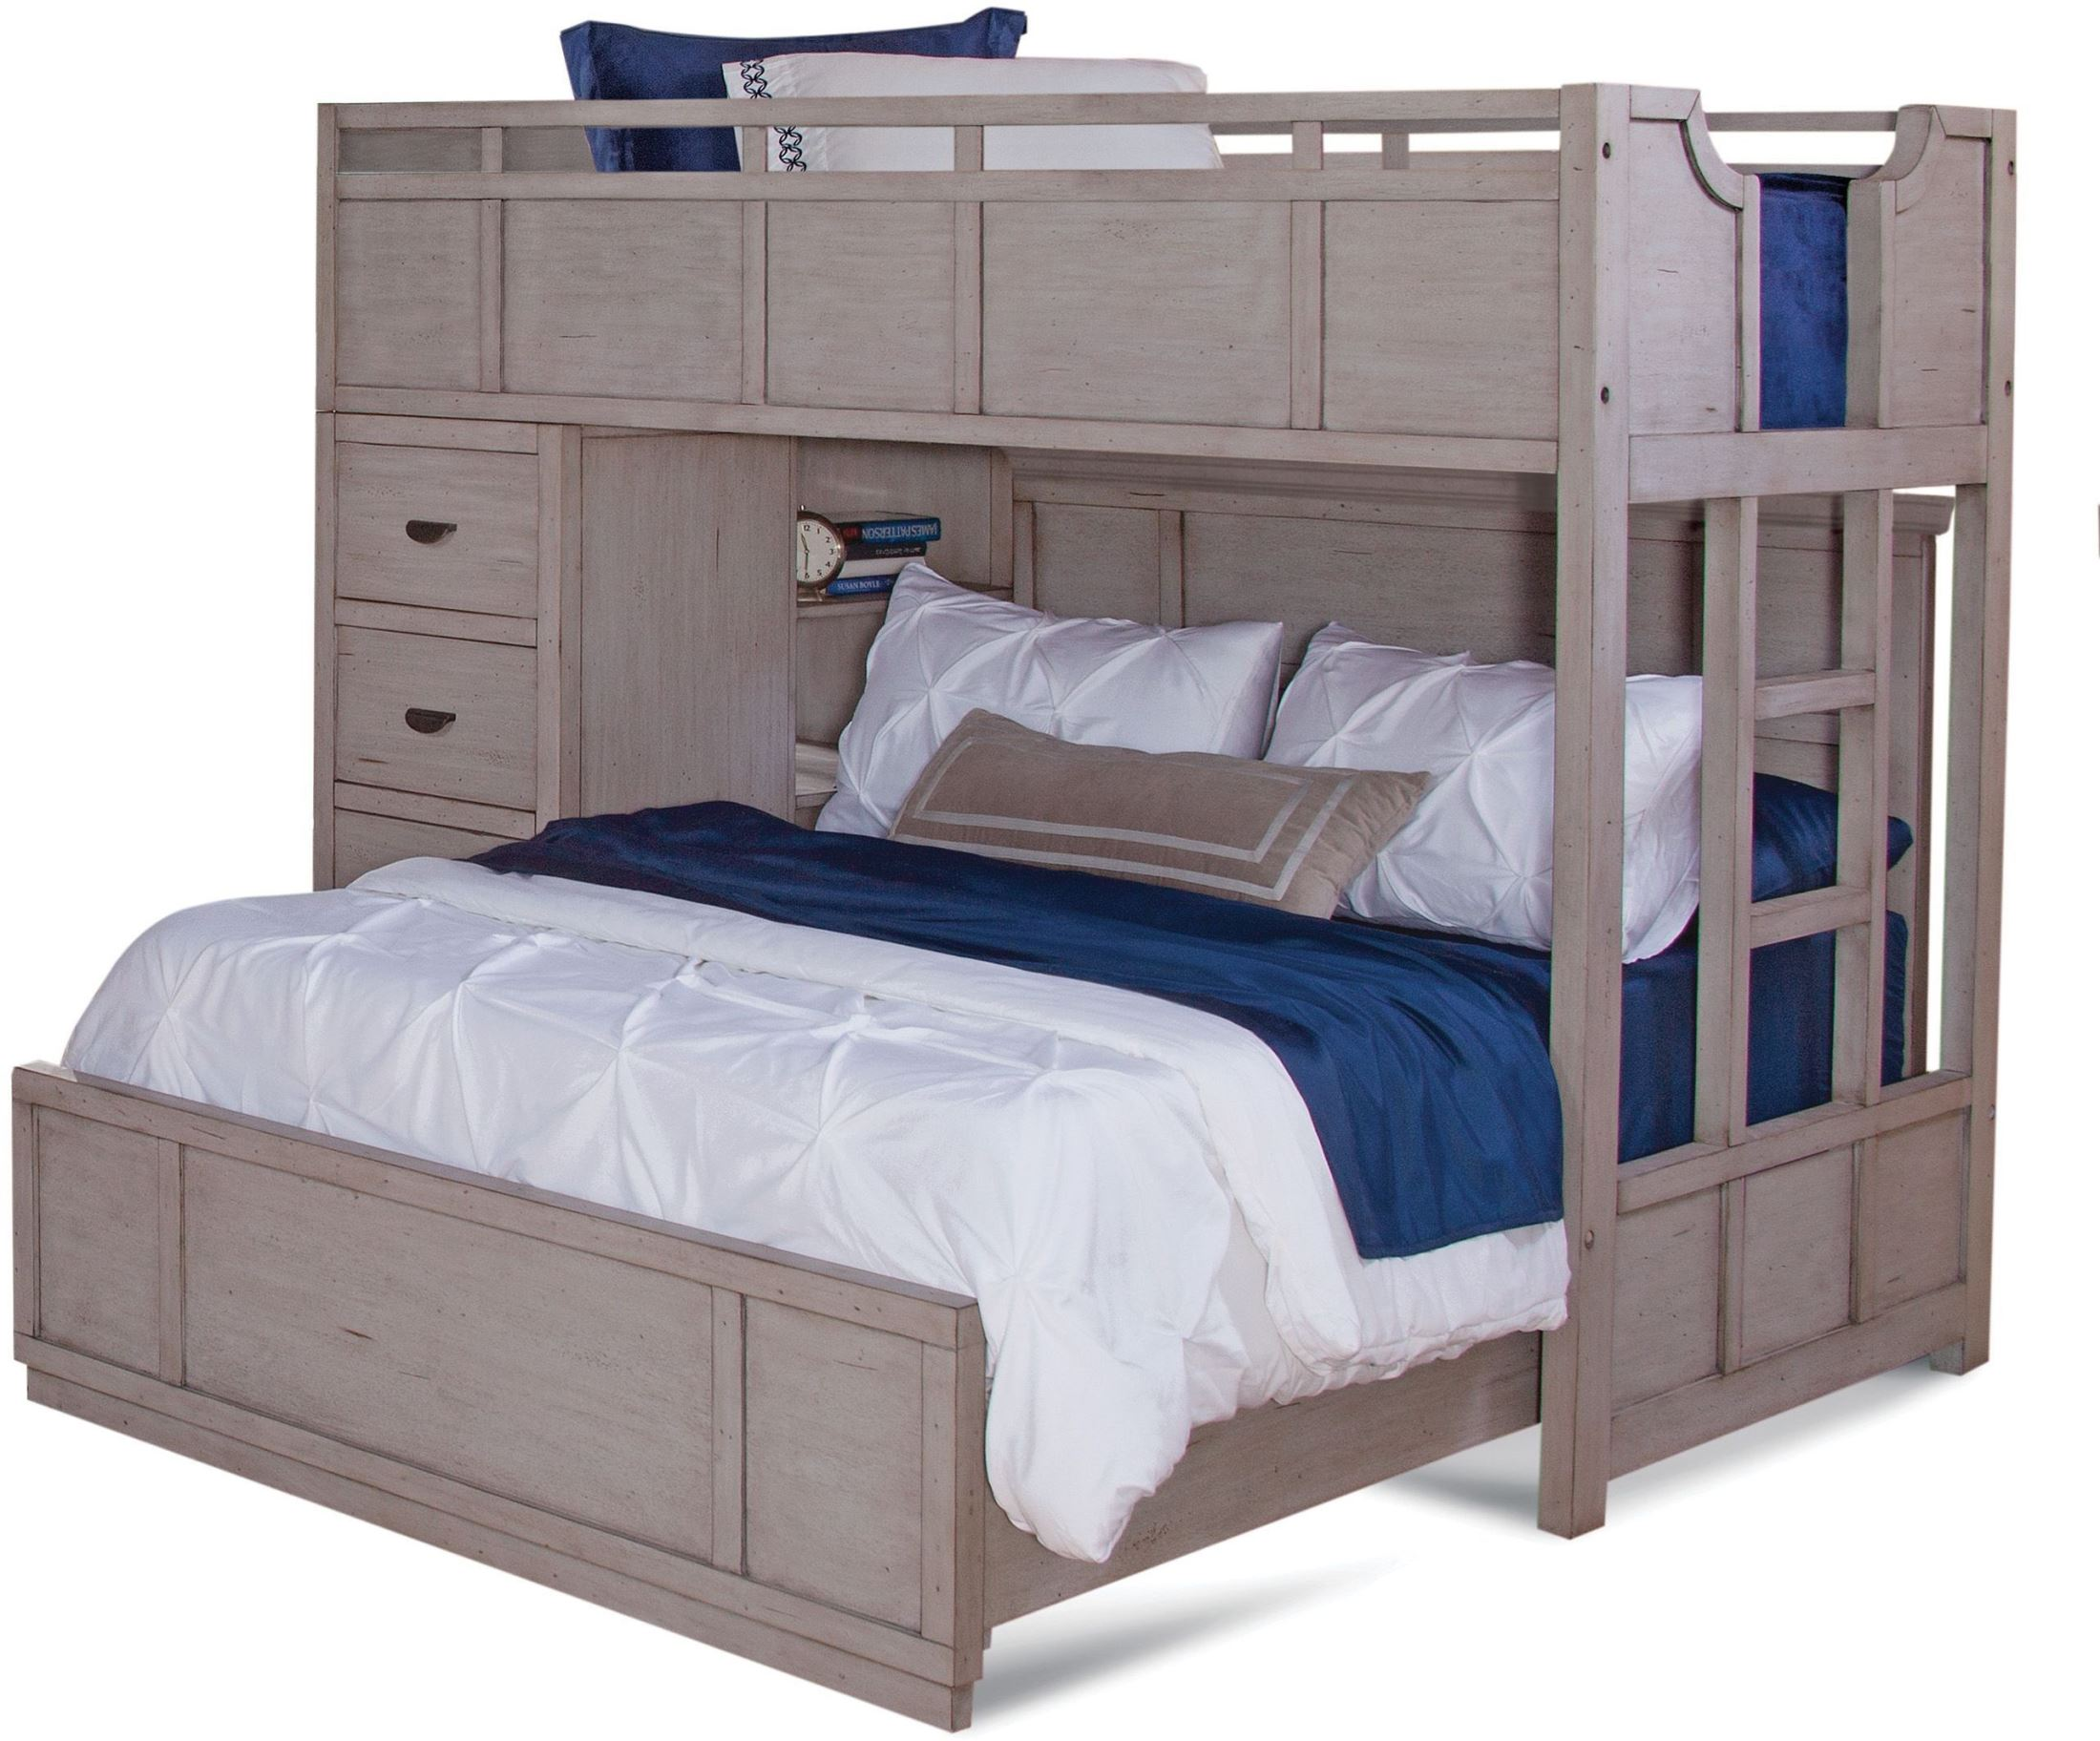 Twin Loft Bed.Provo Driftwood Patina Twin Over Full Loft Bed